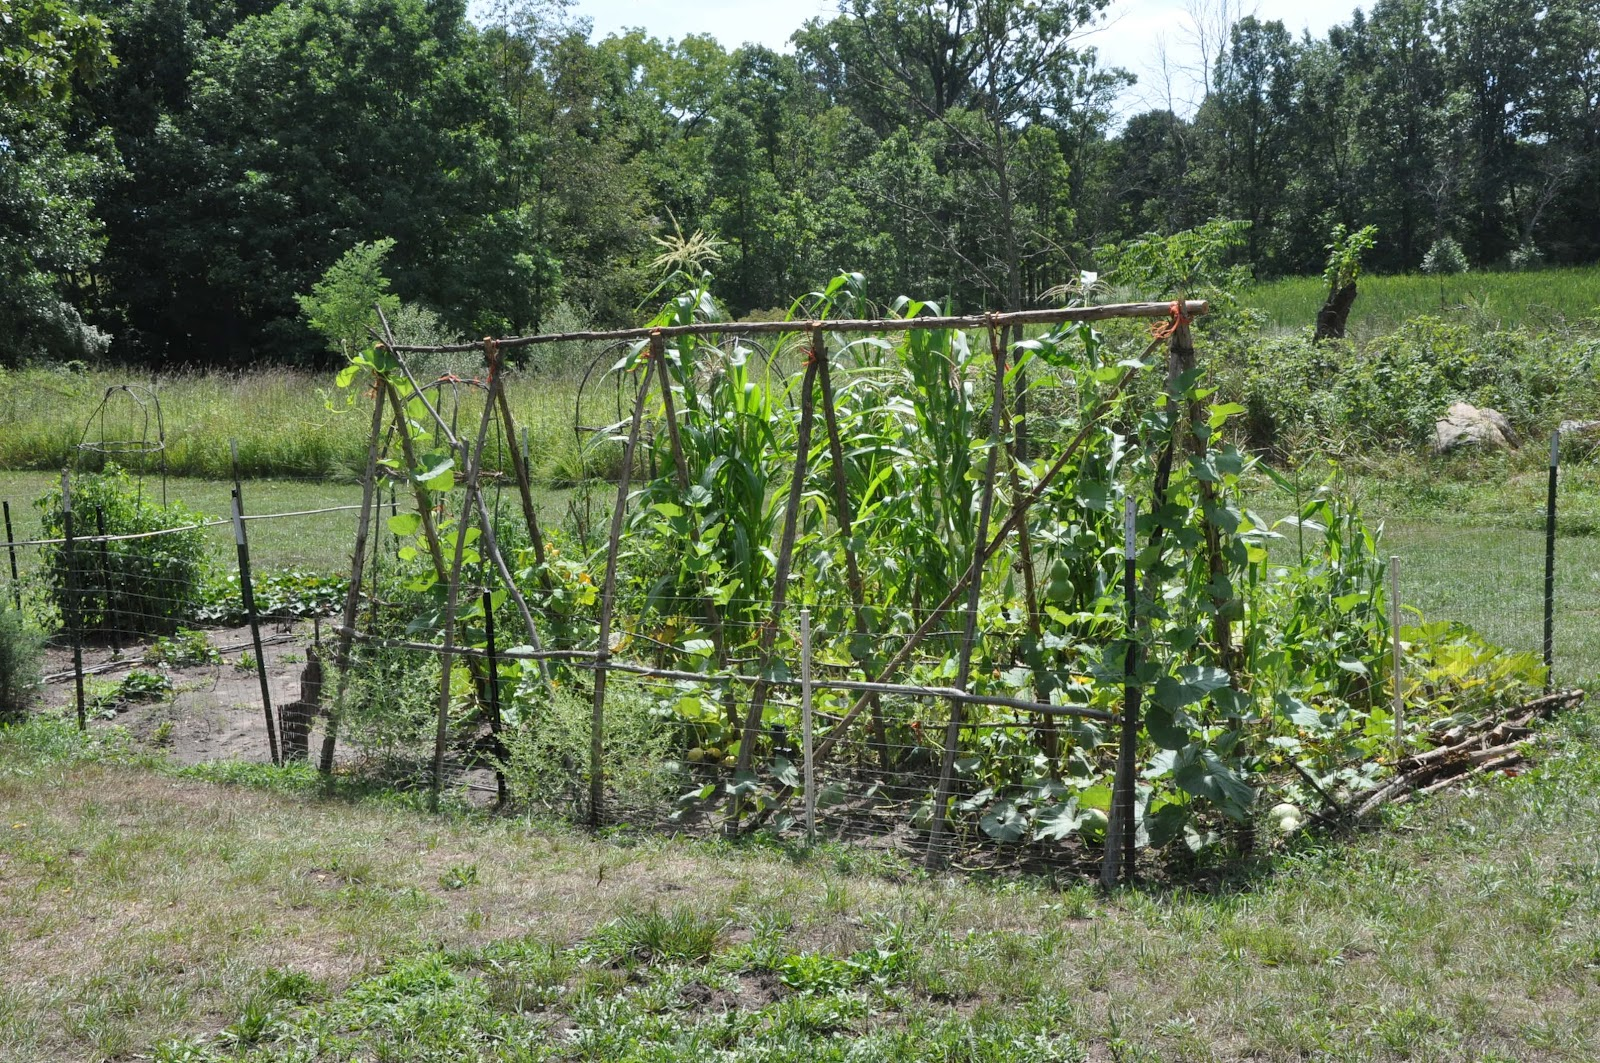 In This Case Much Of The Squash Was Actually Gourds. I May Give Gourds A  Try Next Year   They Seem Like Fun Things To Grow.